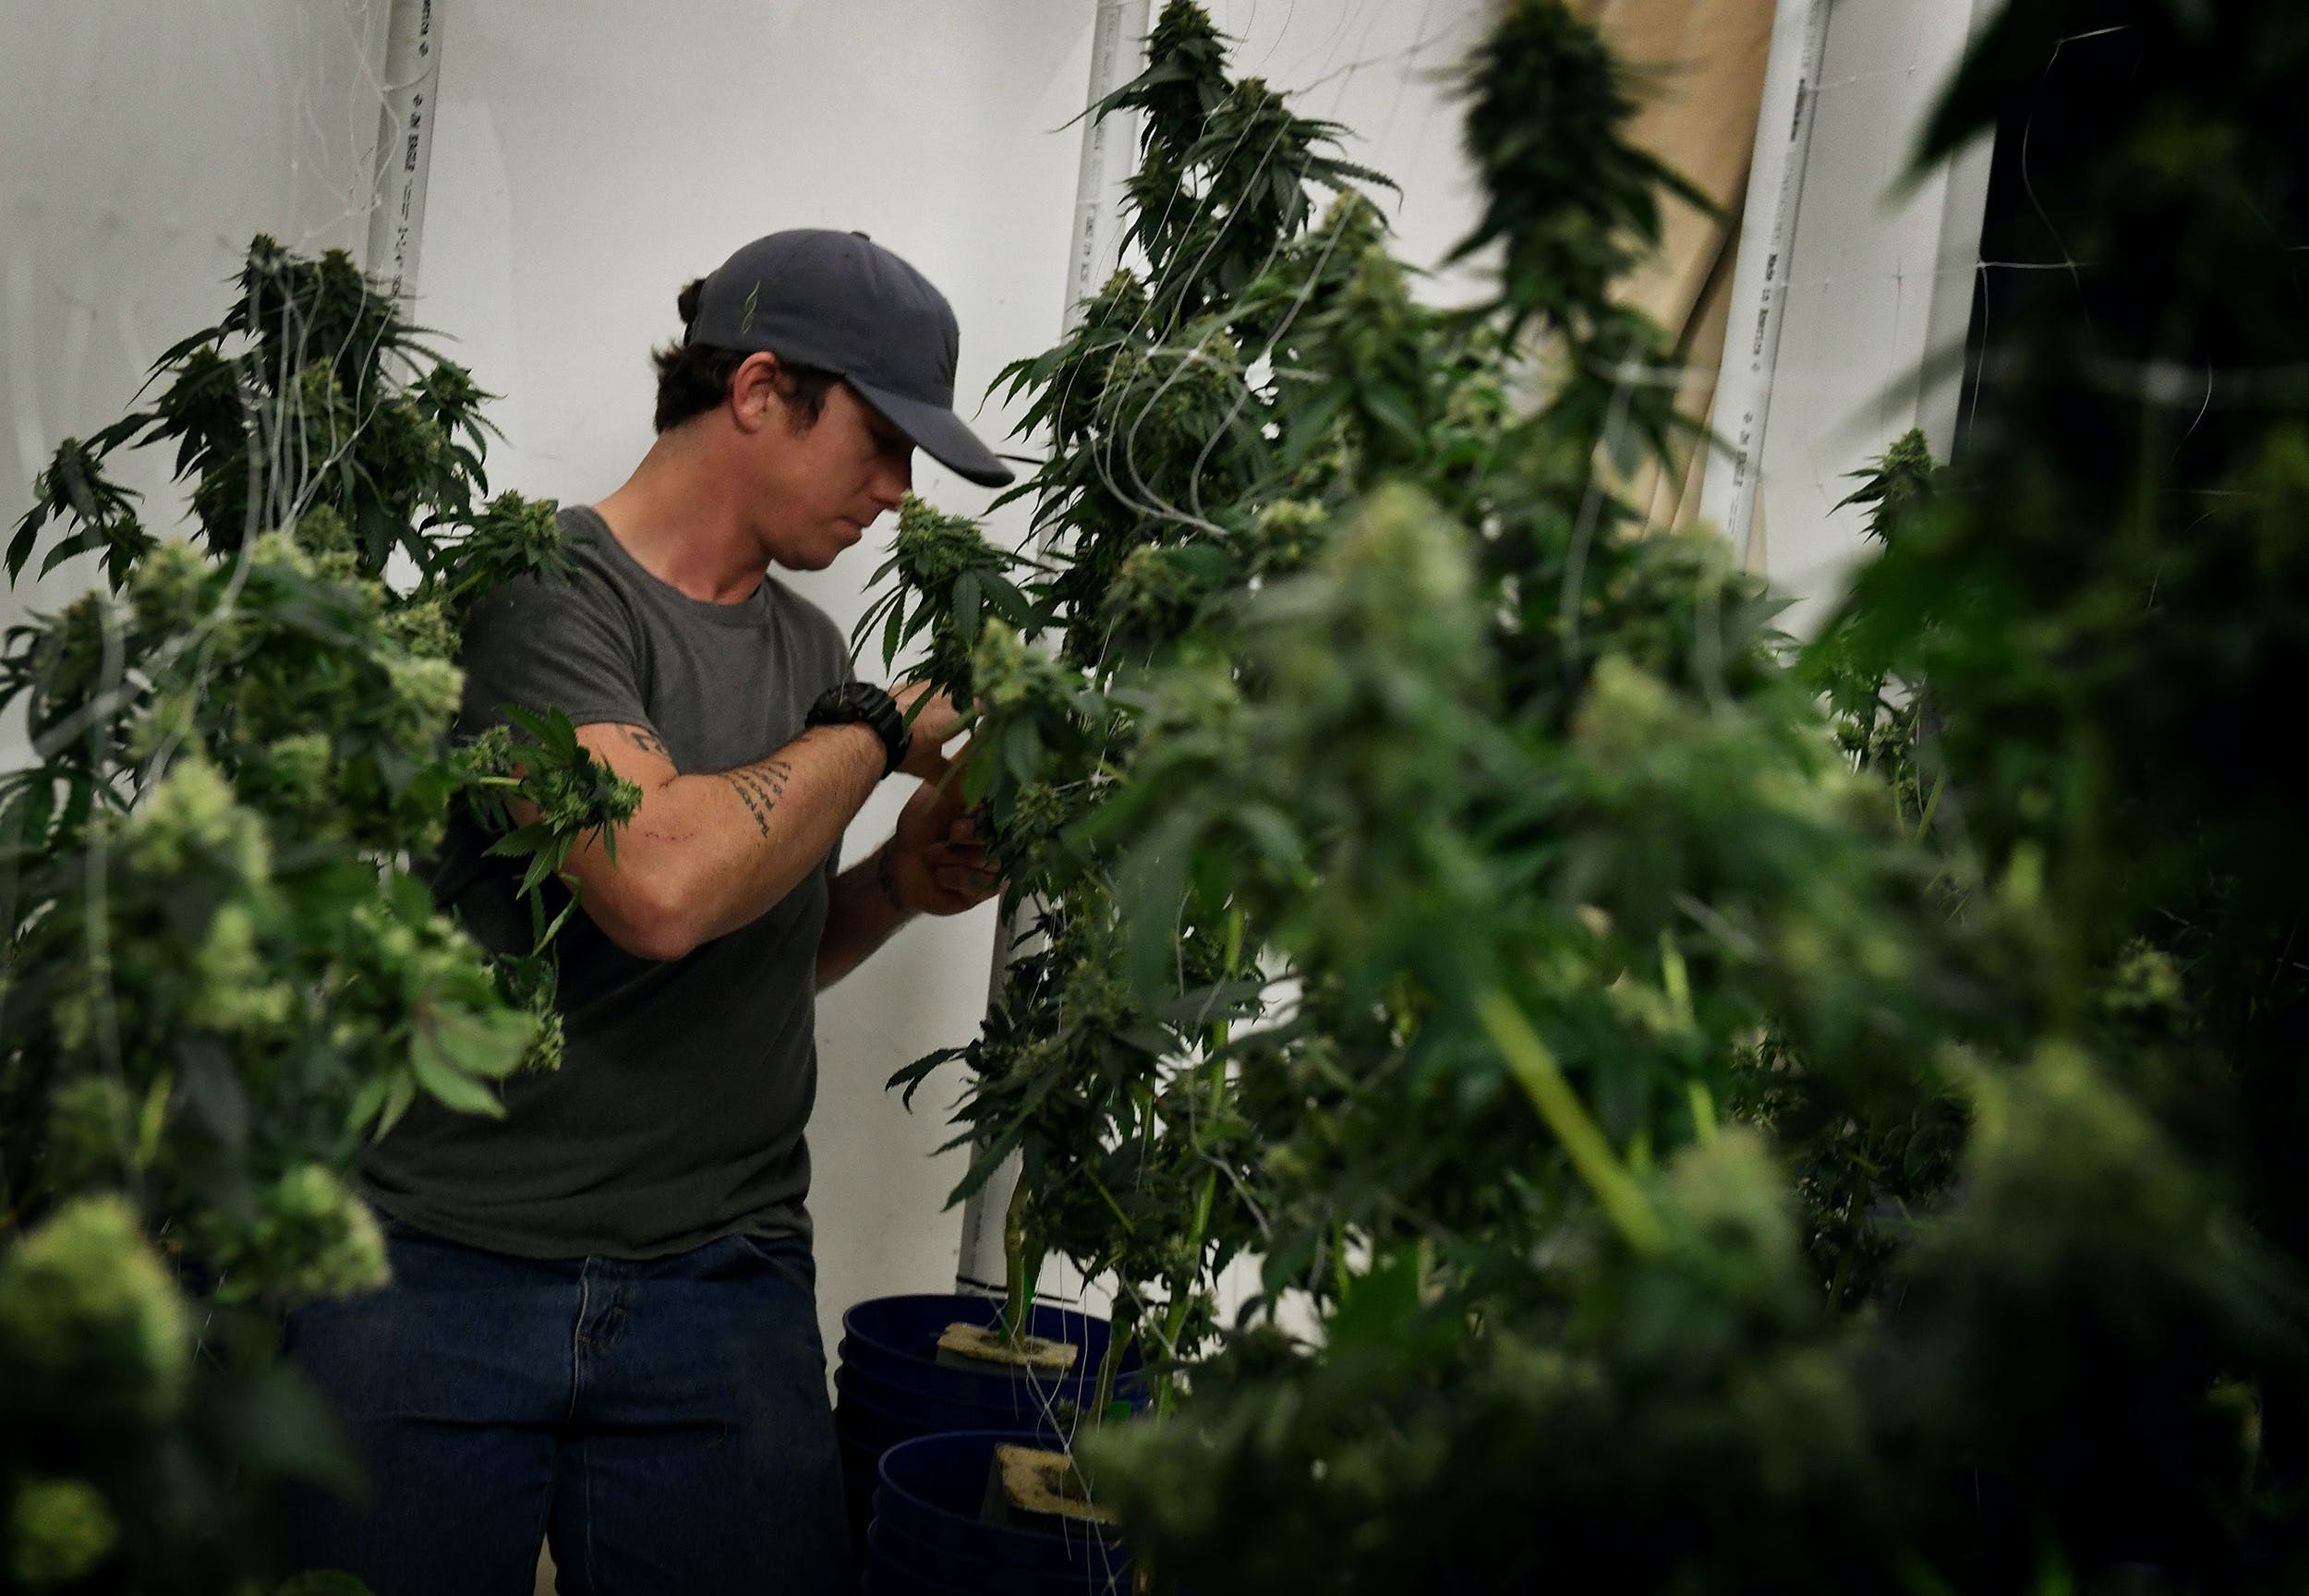 GettyImages 660387322 How robots could run the future cannabis industry, from farming to delivery